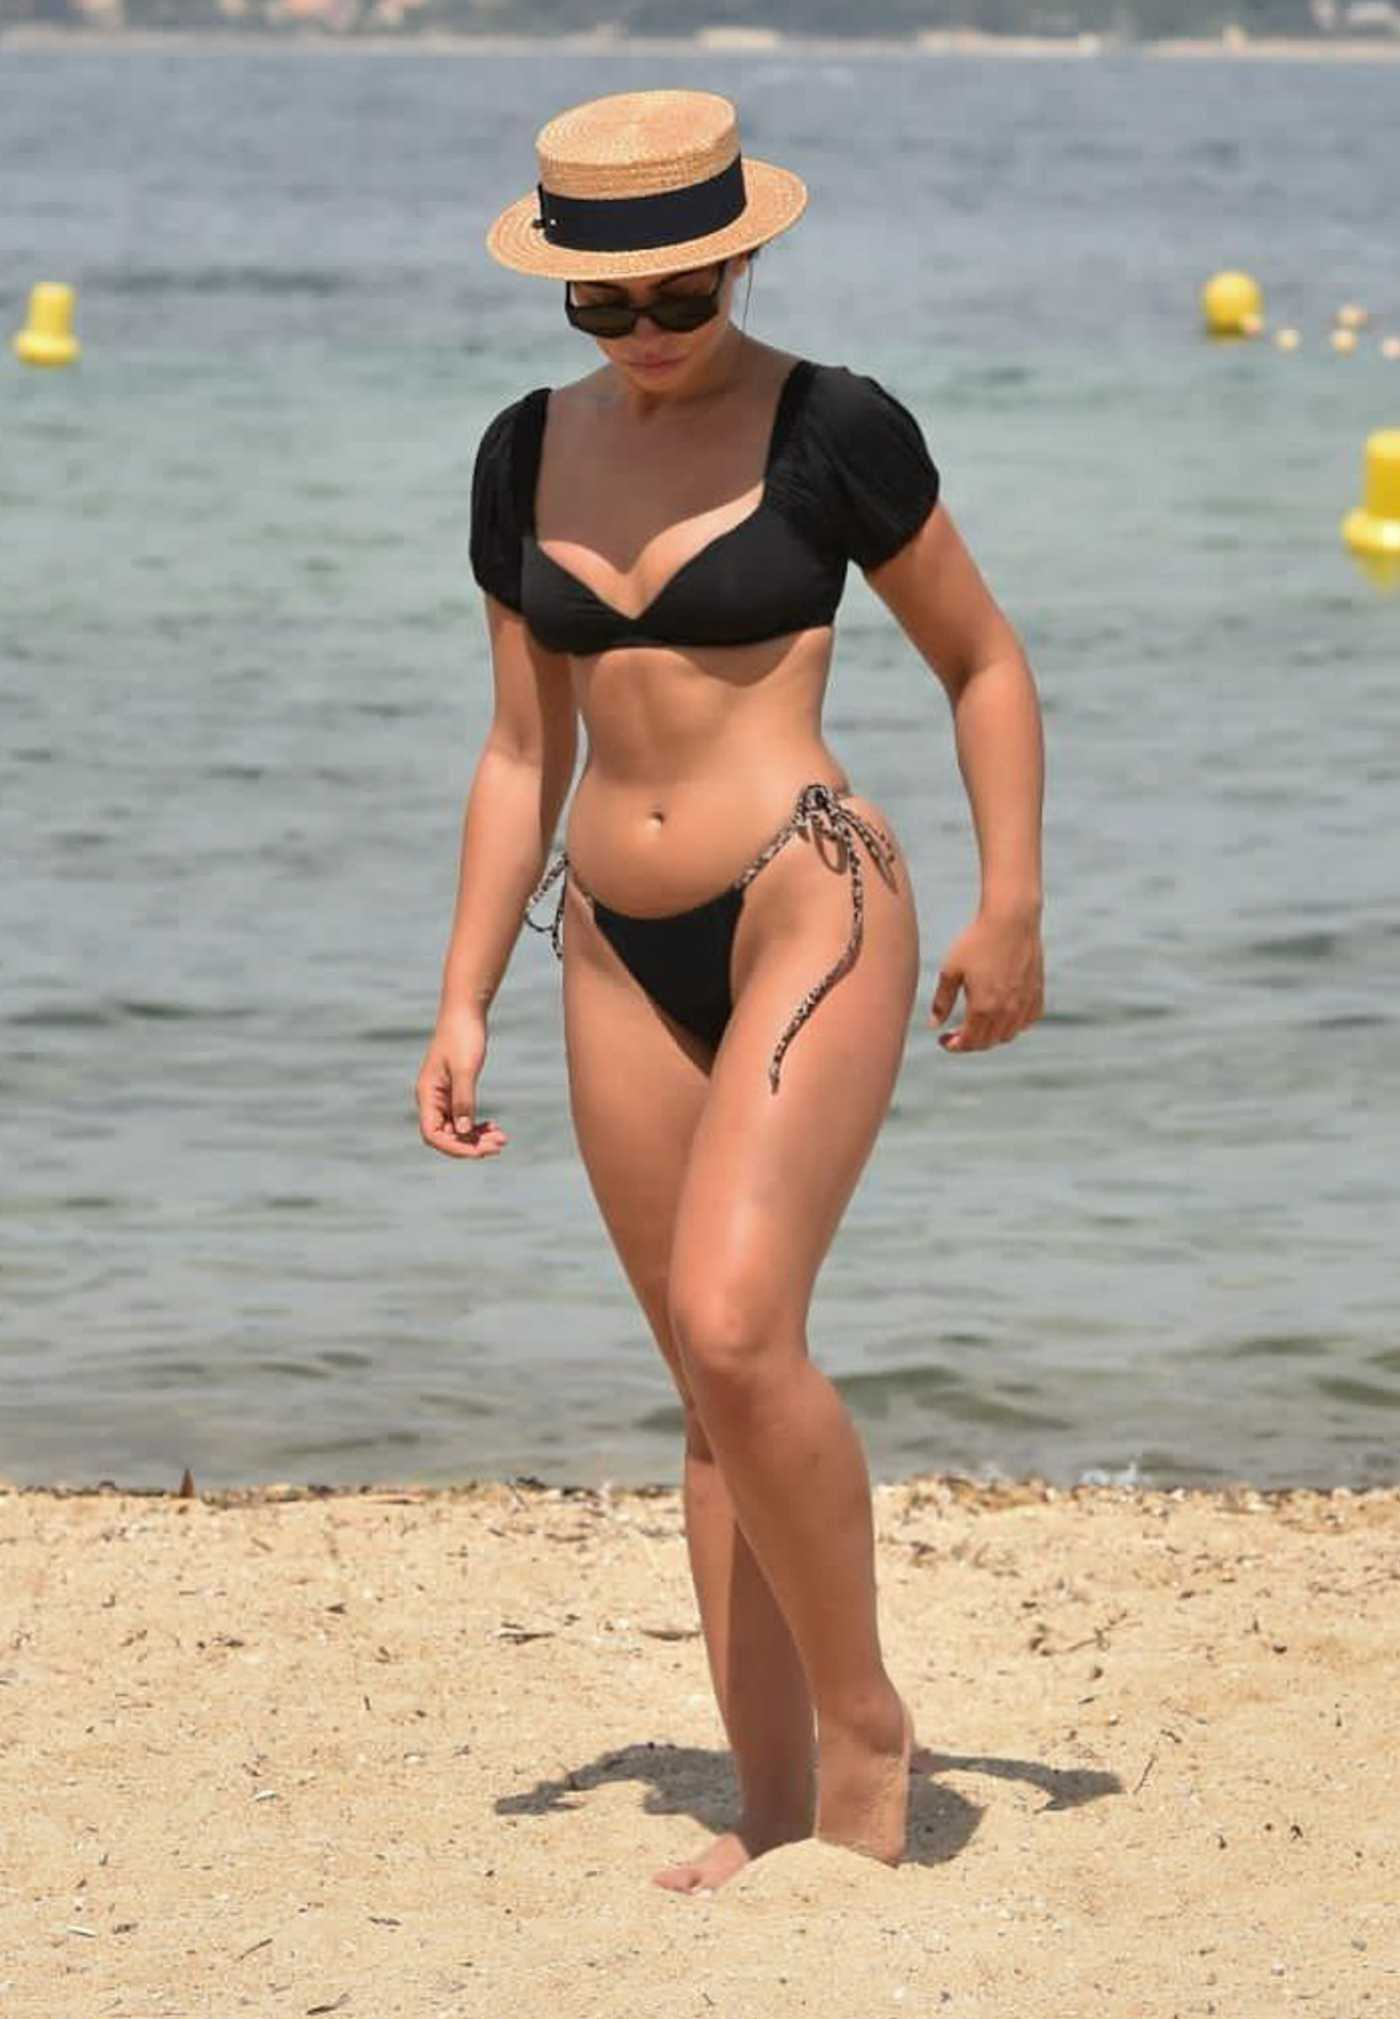 Francesca Allen in a Black Bikini on the Beach in Dubai 11/25/2020